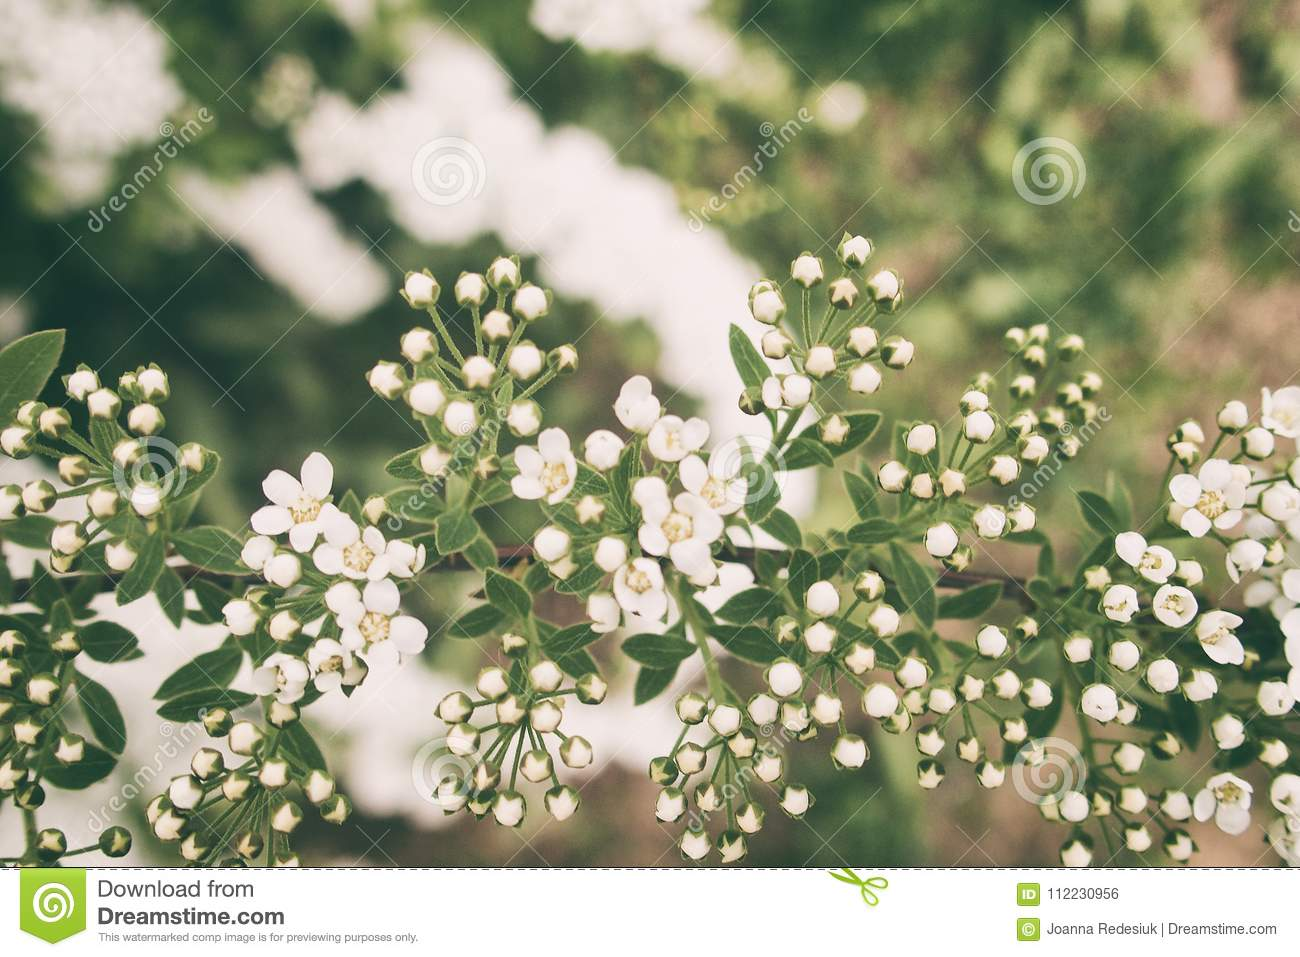 A L Spring Shrub With Small Delicate Delicate White Flowers Stock